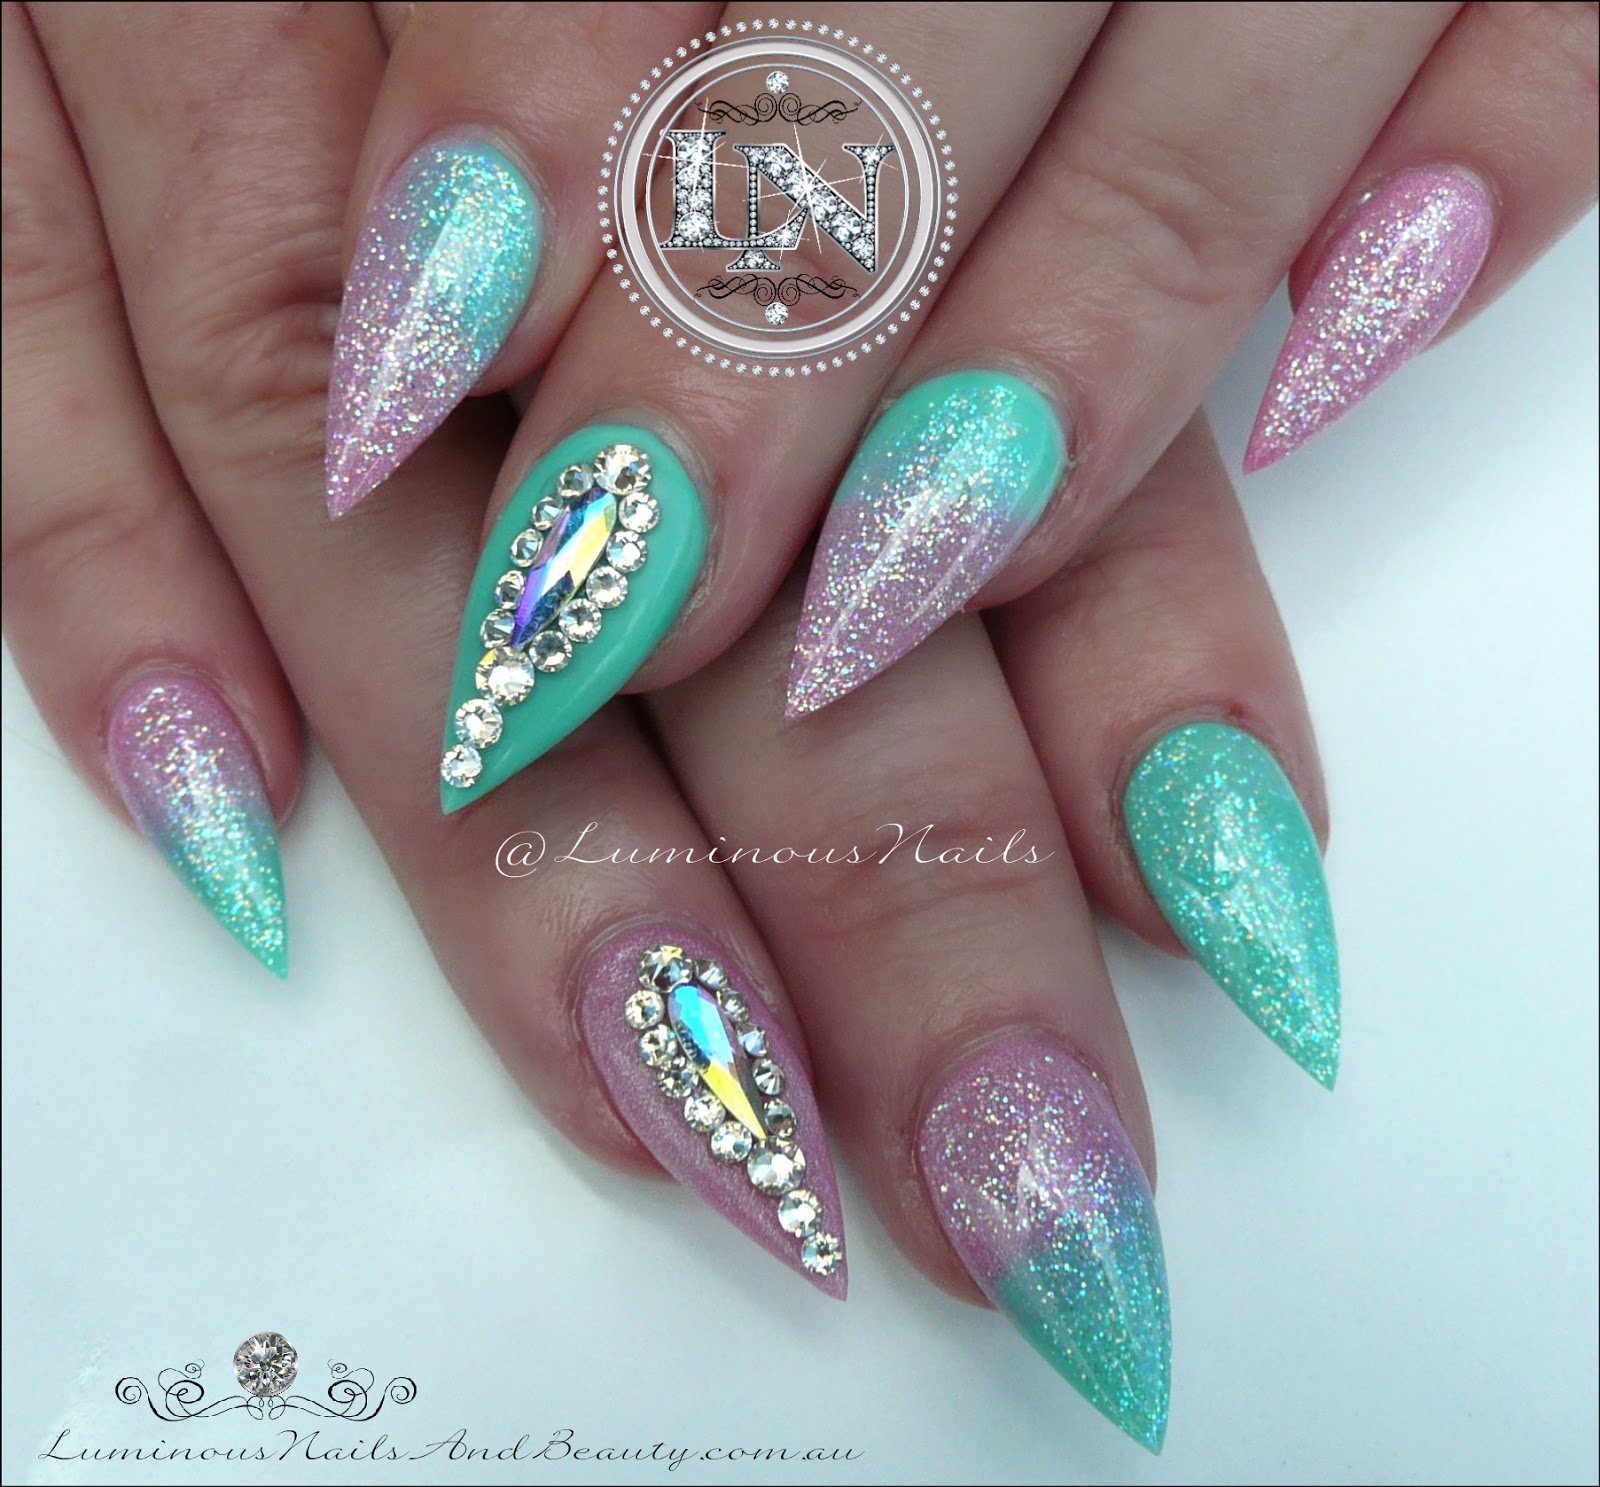 Luminous nails shimmery pink mint green acrylic nails shimmery pink mint green acrylic nailsspired by margaritasnailz prinsesfo Gallery